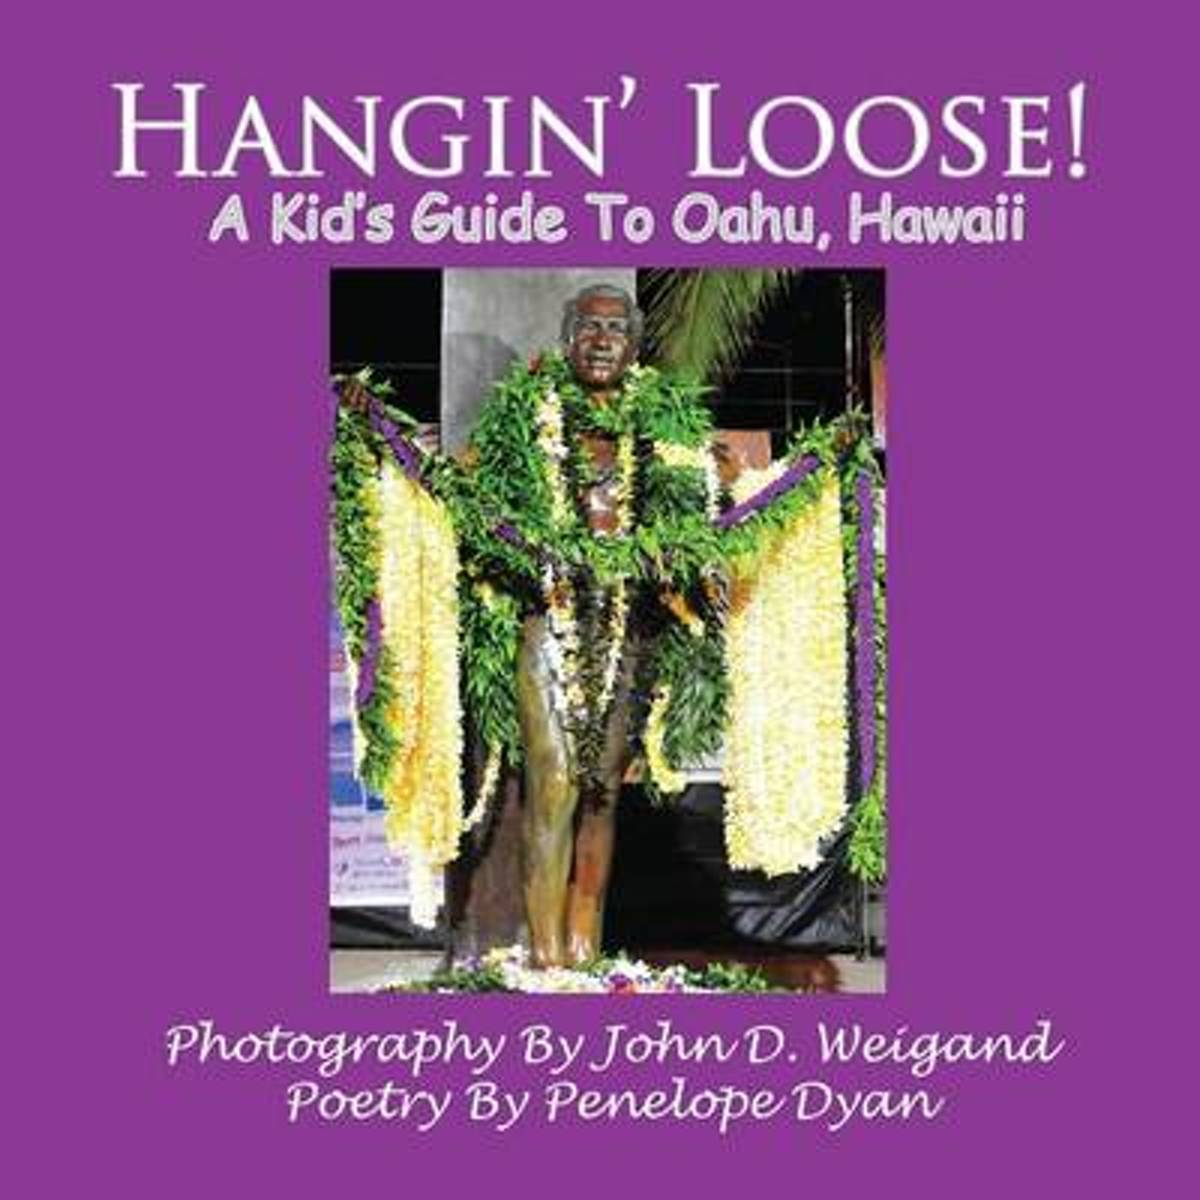 Hangin' Loose! A Kid's Guide To Oahu, Hawaii